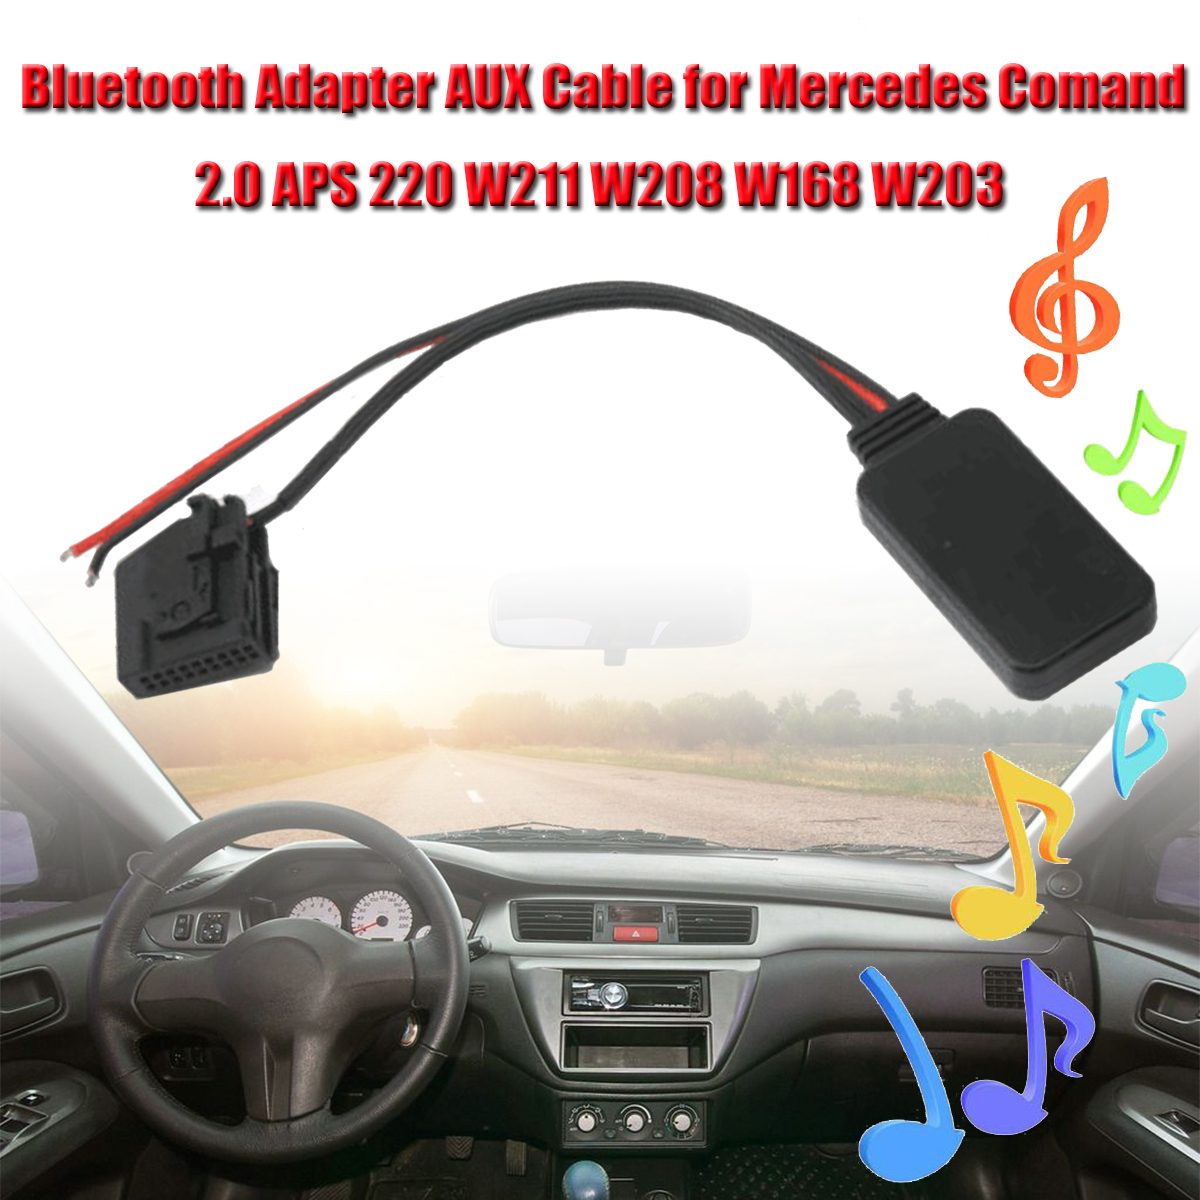 bluetooth Car Adapter AUX Cable for Mercedes Comand 2.0 APS 220 W211 W208 W168 W203 Audio Playback Audio Car AUX Cable image